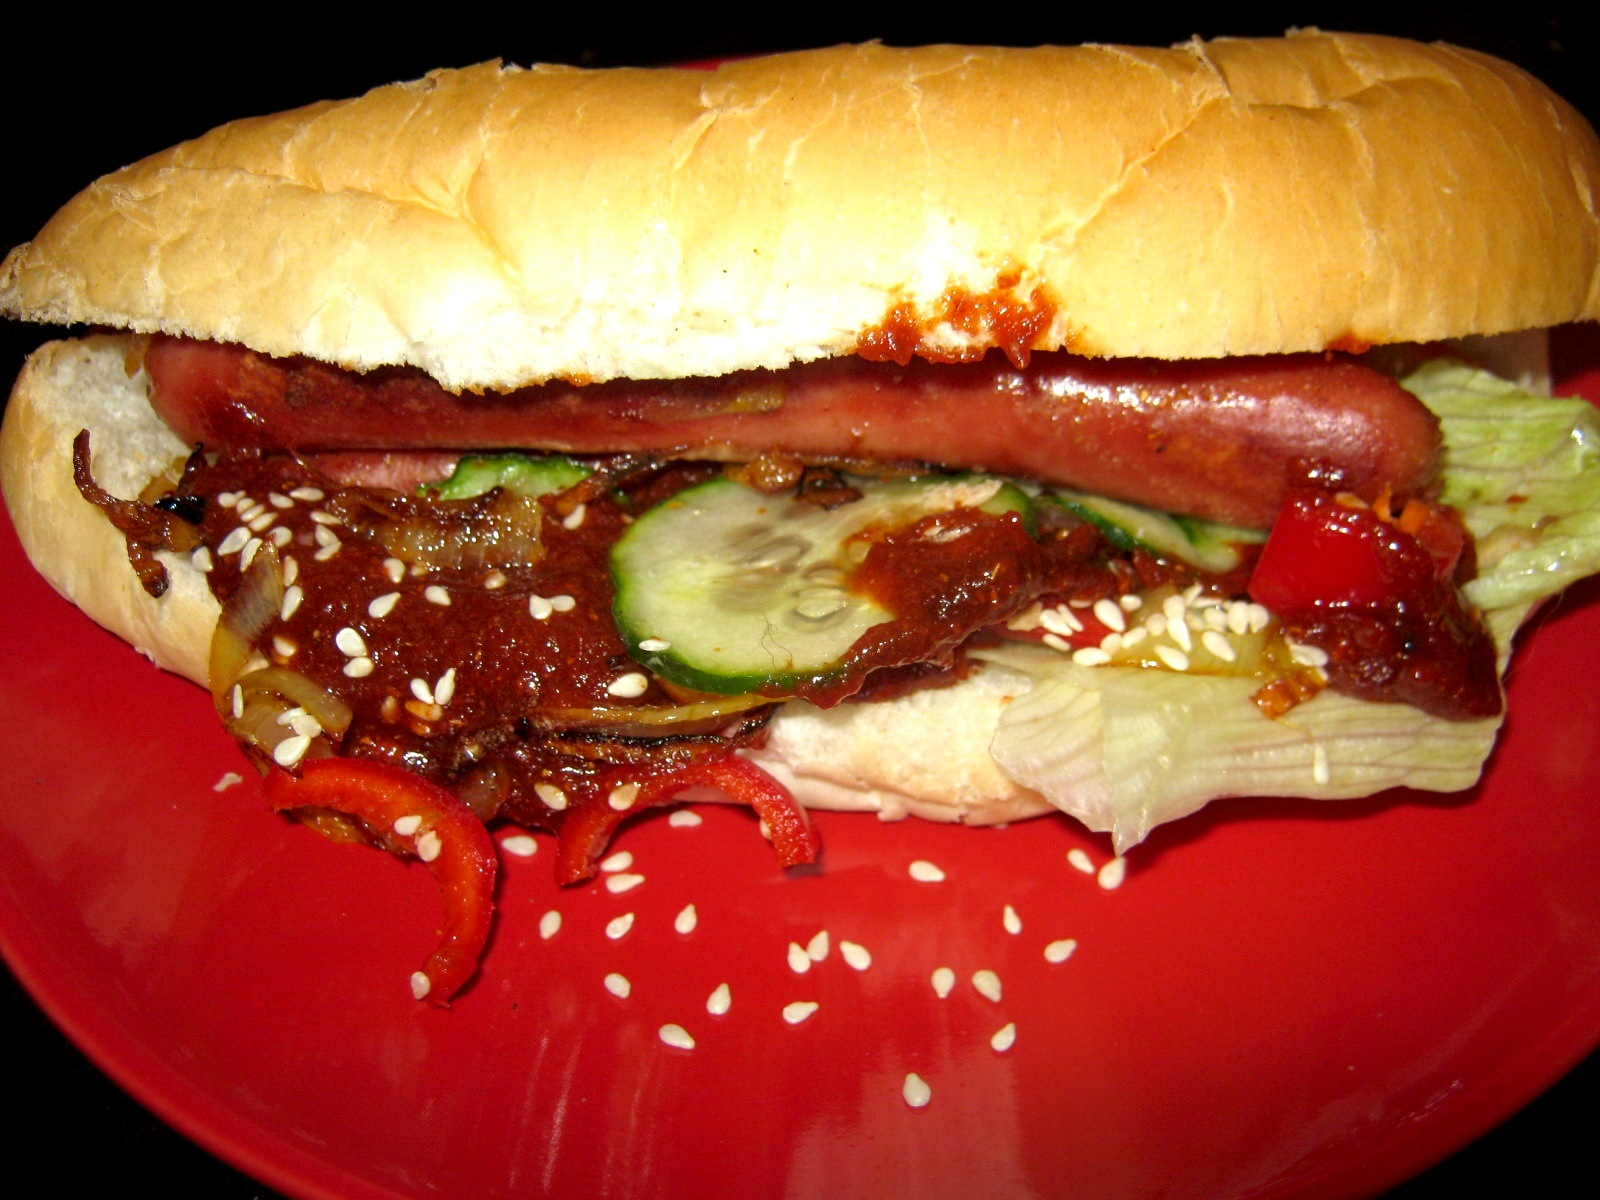 Quick hot dog with lettuce, cucumber, tomato, braised onions, jalapeno pepper, sesame seeds and a German style sweet and spicy curry sauce